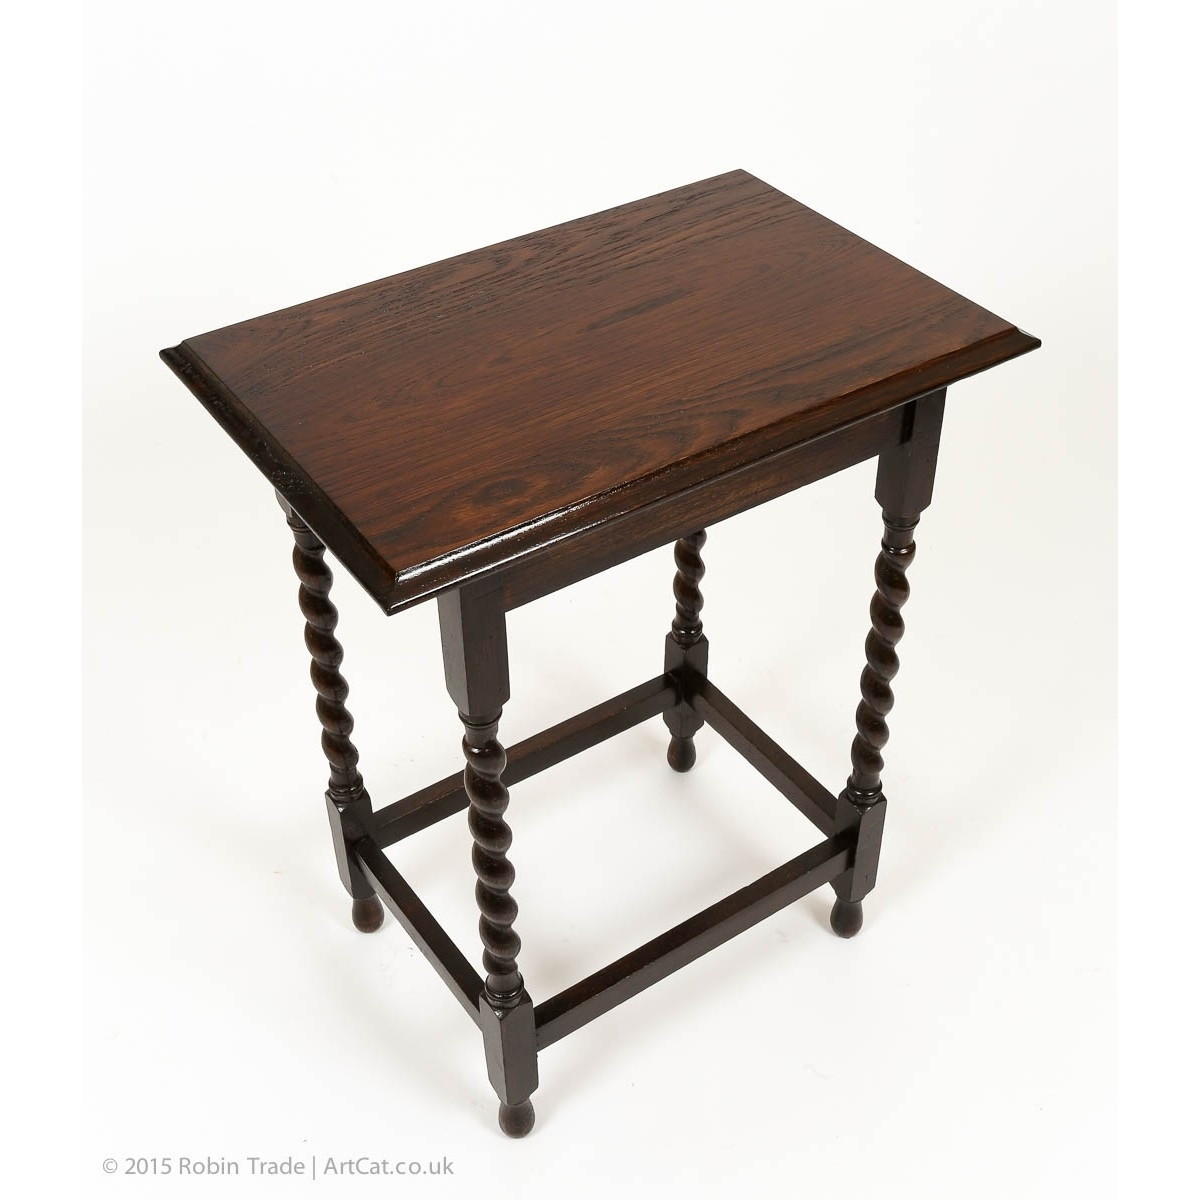 Antique Early 20Th Century Small Side Table With Barley Twist Legs regarding Barley Twist Coffee Tables (Image 3 of 30)